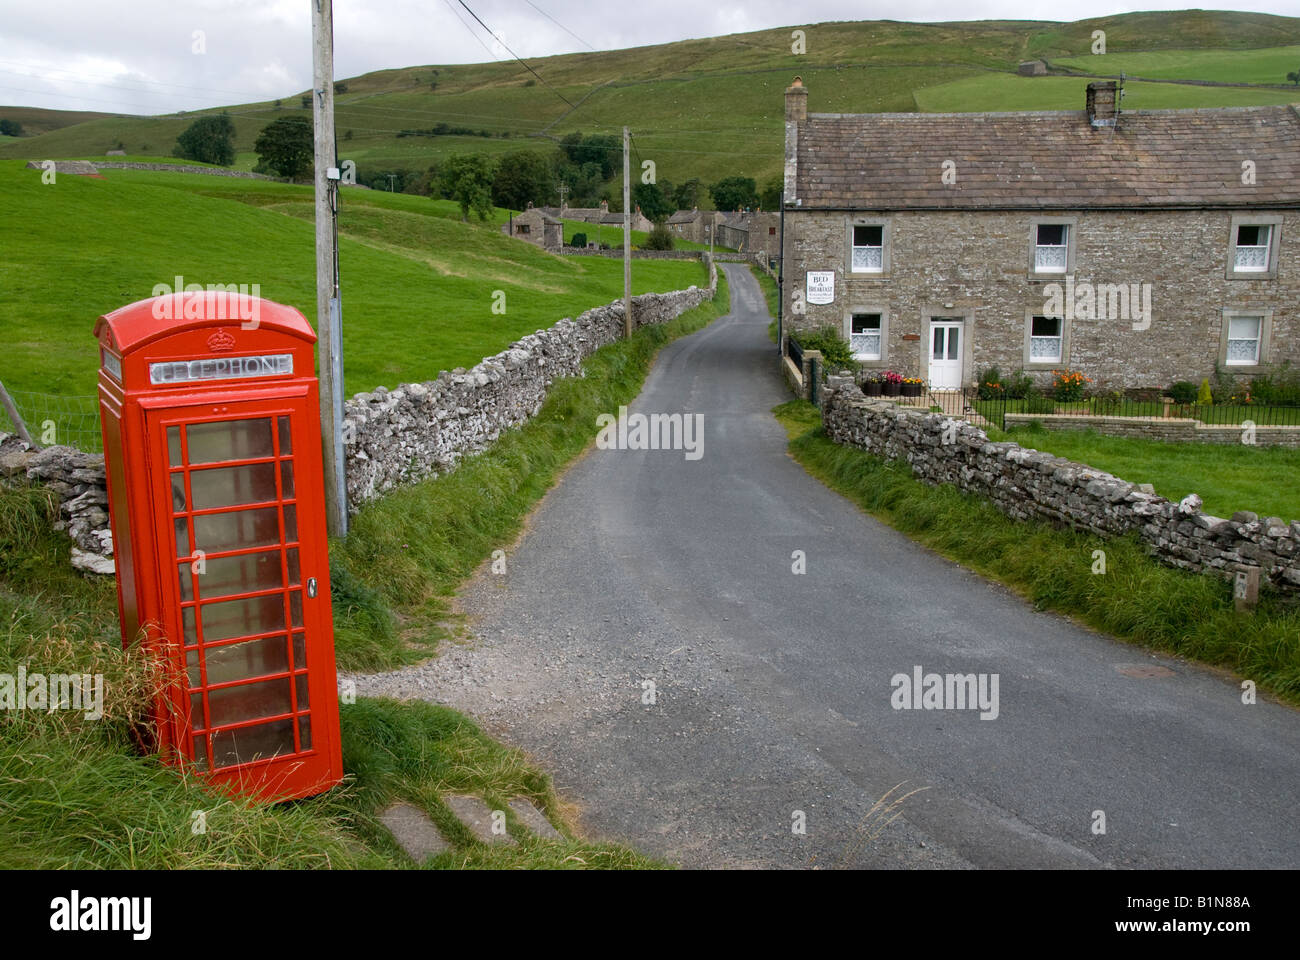 Stone houses, walls and red phonebox, Keld Village, Swaledale, Yorkshire Dales National Park - Stock Image